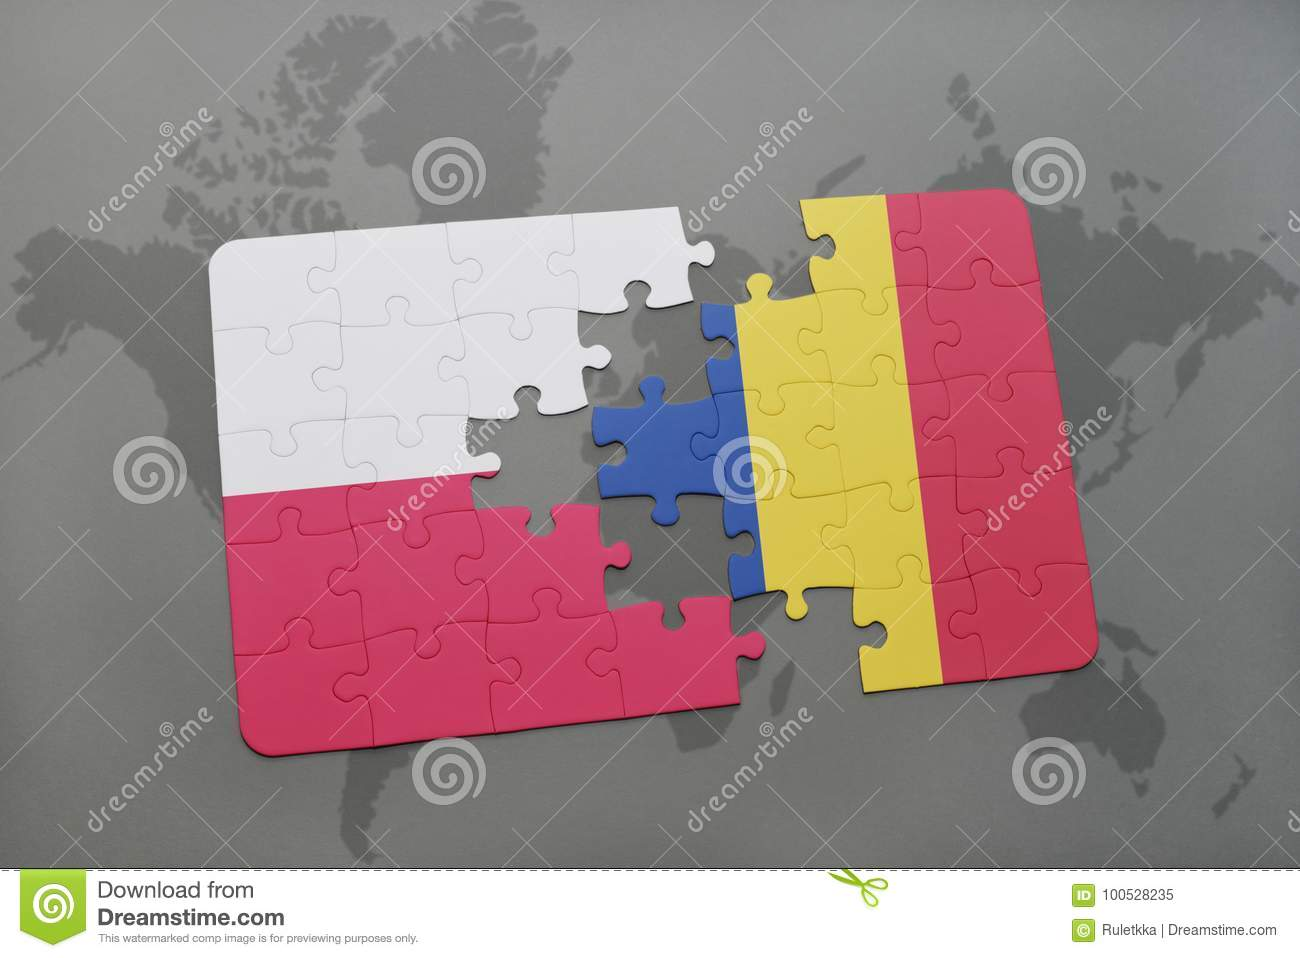 Puzzle with the national flag of poland and romania on a world map puzzle with the national flag of poland and romania on a world map background gumiabroncs Choice Image